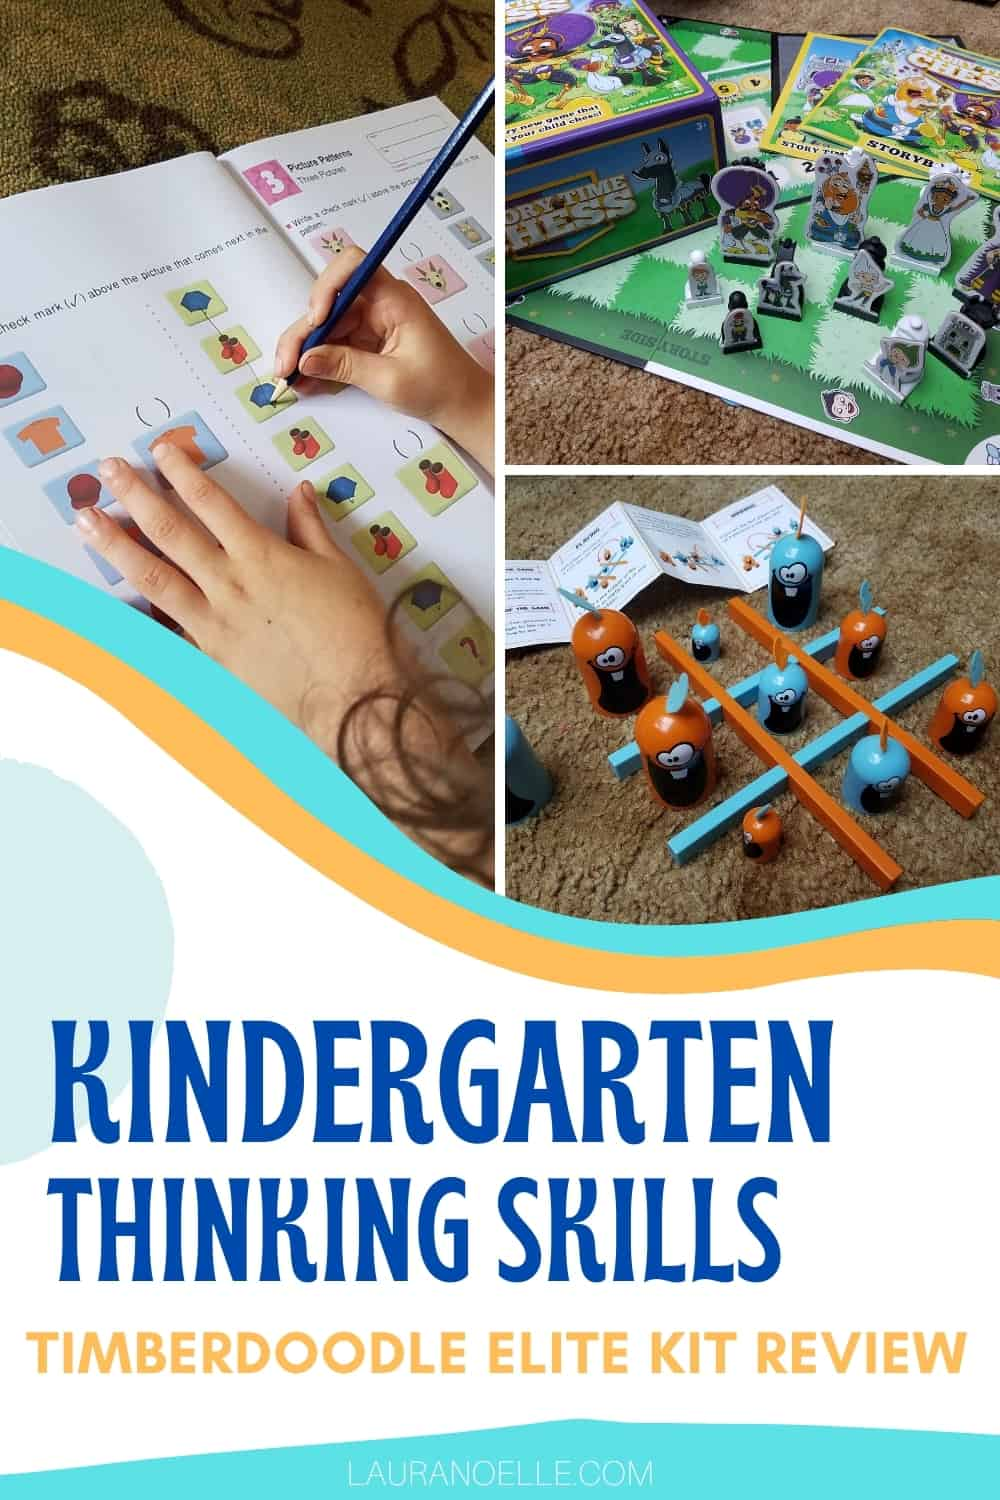 Building strong minds takes practice, and Timberdoodle is known for putting the best tools together in their skill-focused education kits. Here's what we thought of the Kindergarten Thinking Skills materials.